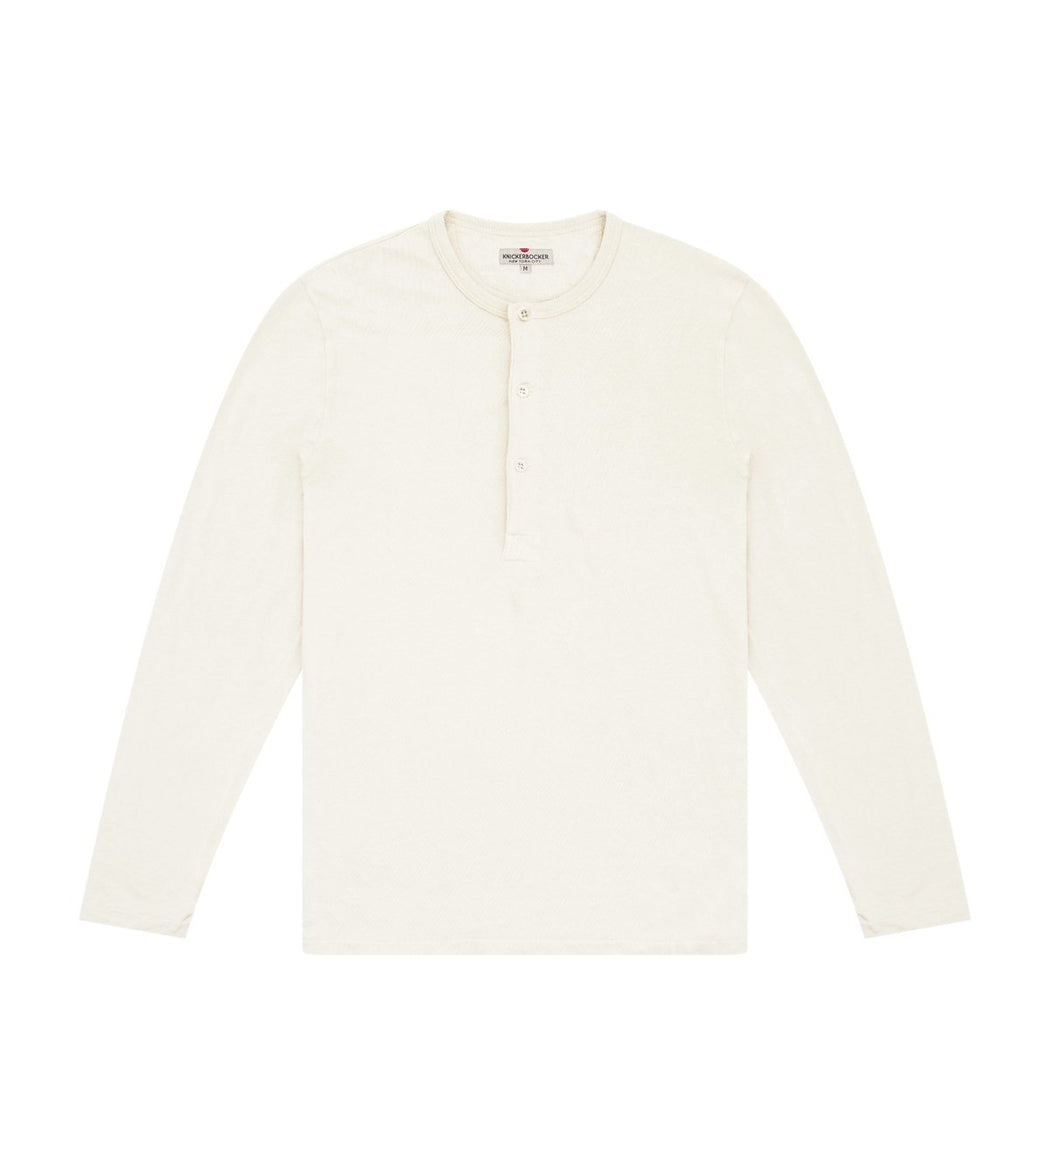 Long Sleeve Henley Tube Tee, Knickerbocker, - Felding Co